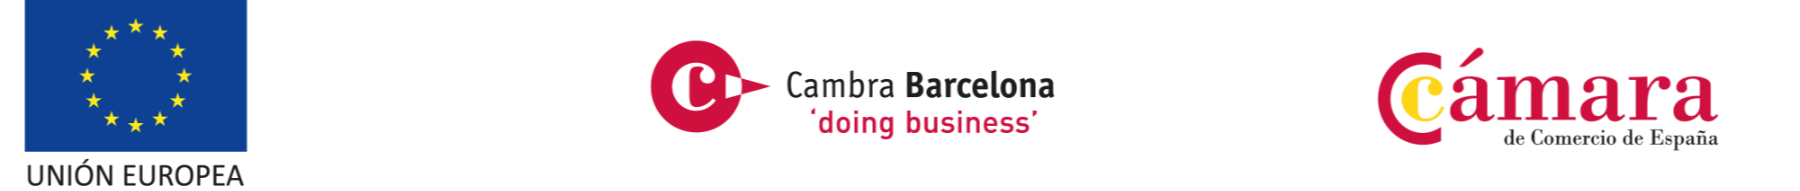 UE Doing Business Logos EU, Cambra Barcelona y Cámara